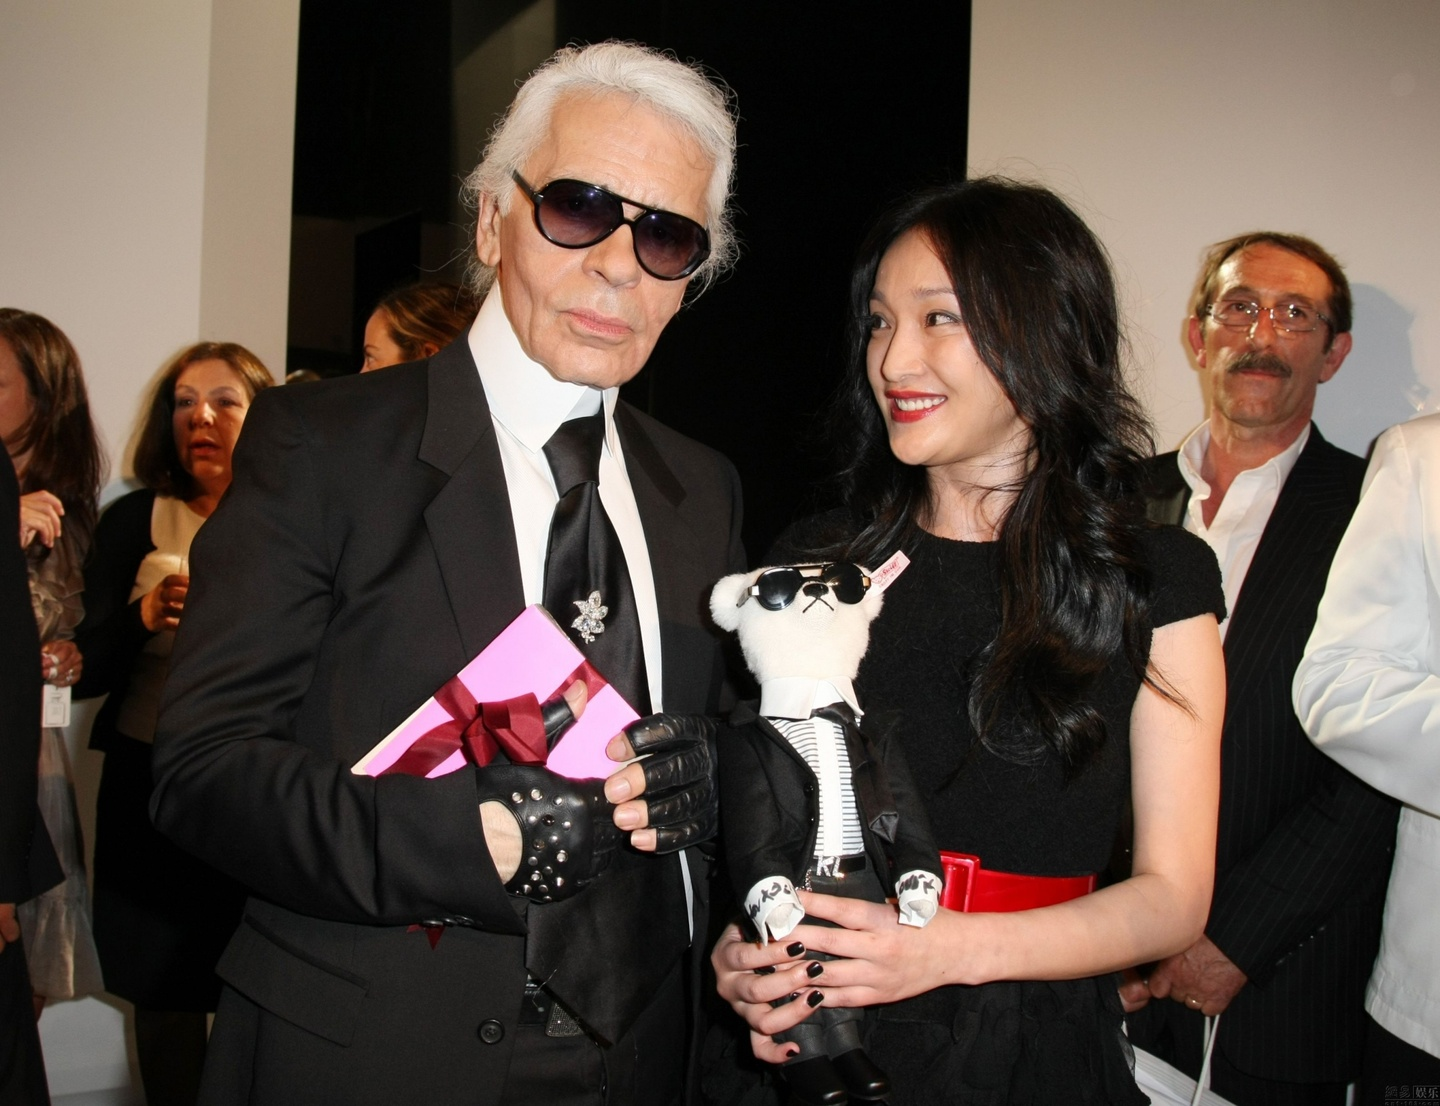 Karl Lagerfeld tung sung ai nhung my nhan Trung Quoc nao? hinh anh 1